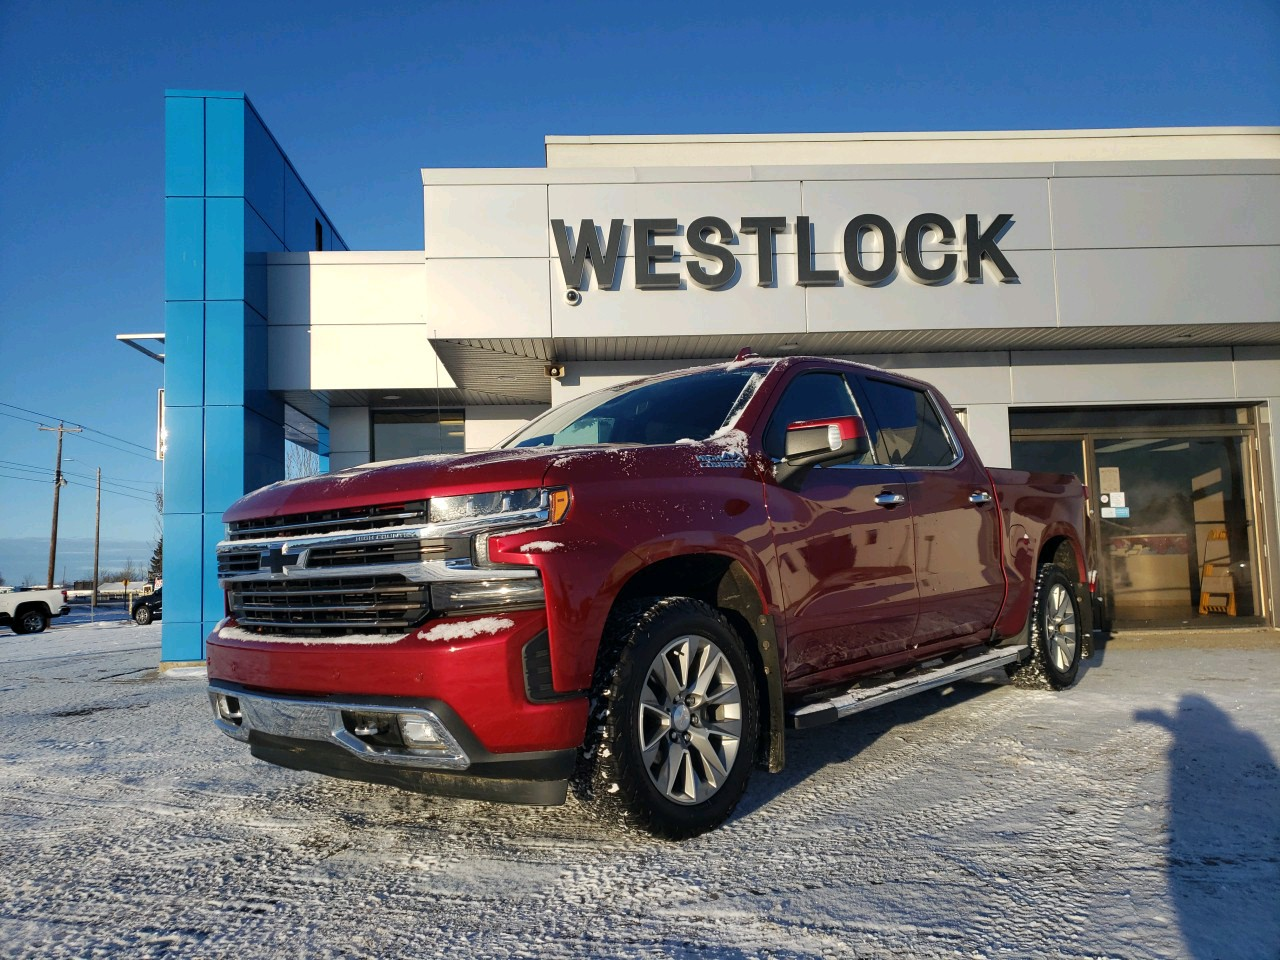 2019 Chevrolet Silverado 1500 High Country - 103,228km